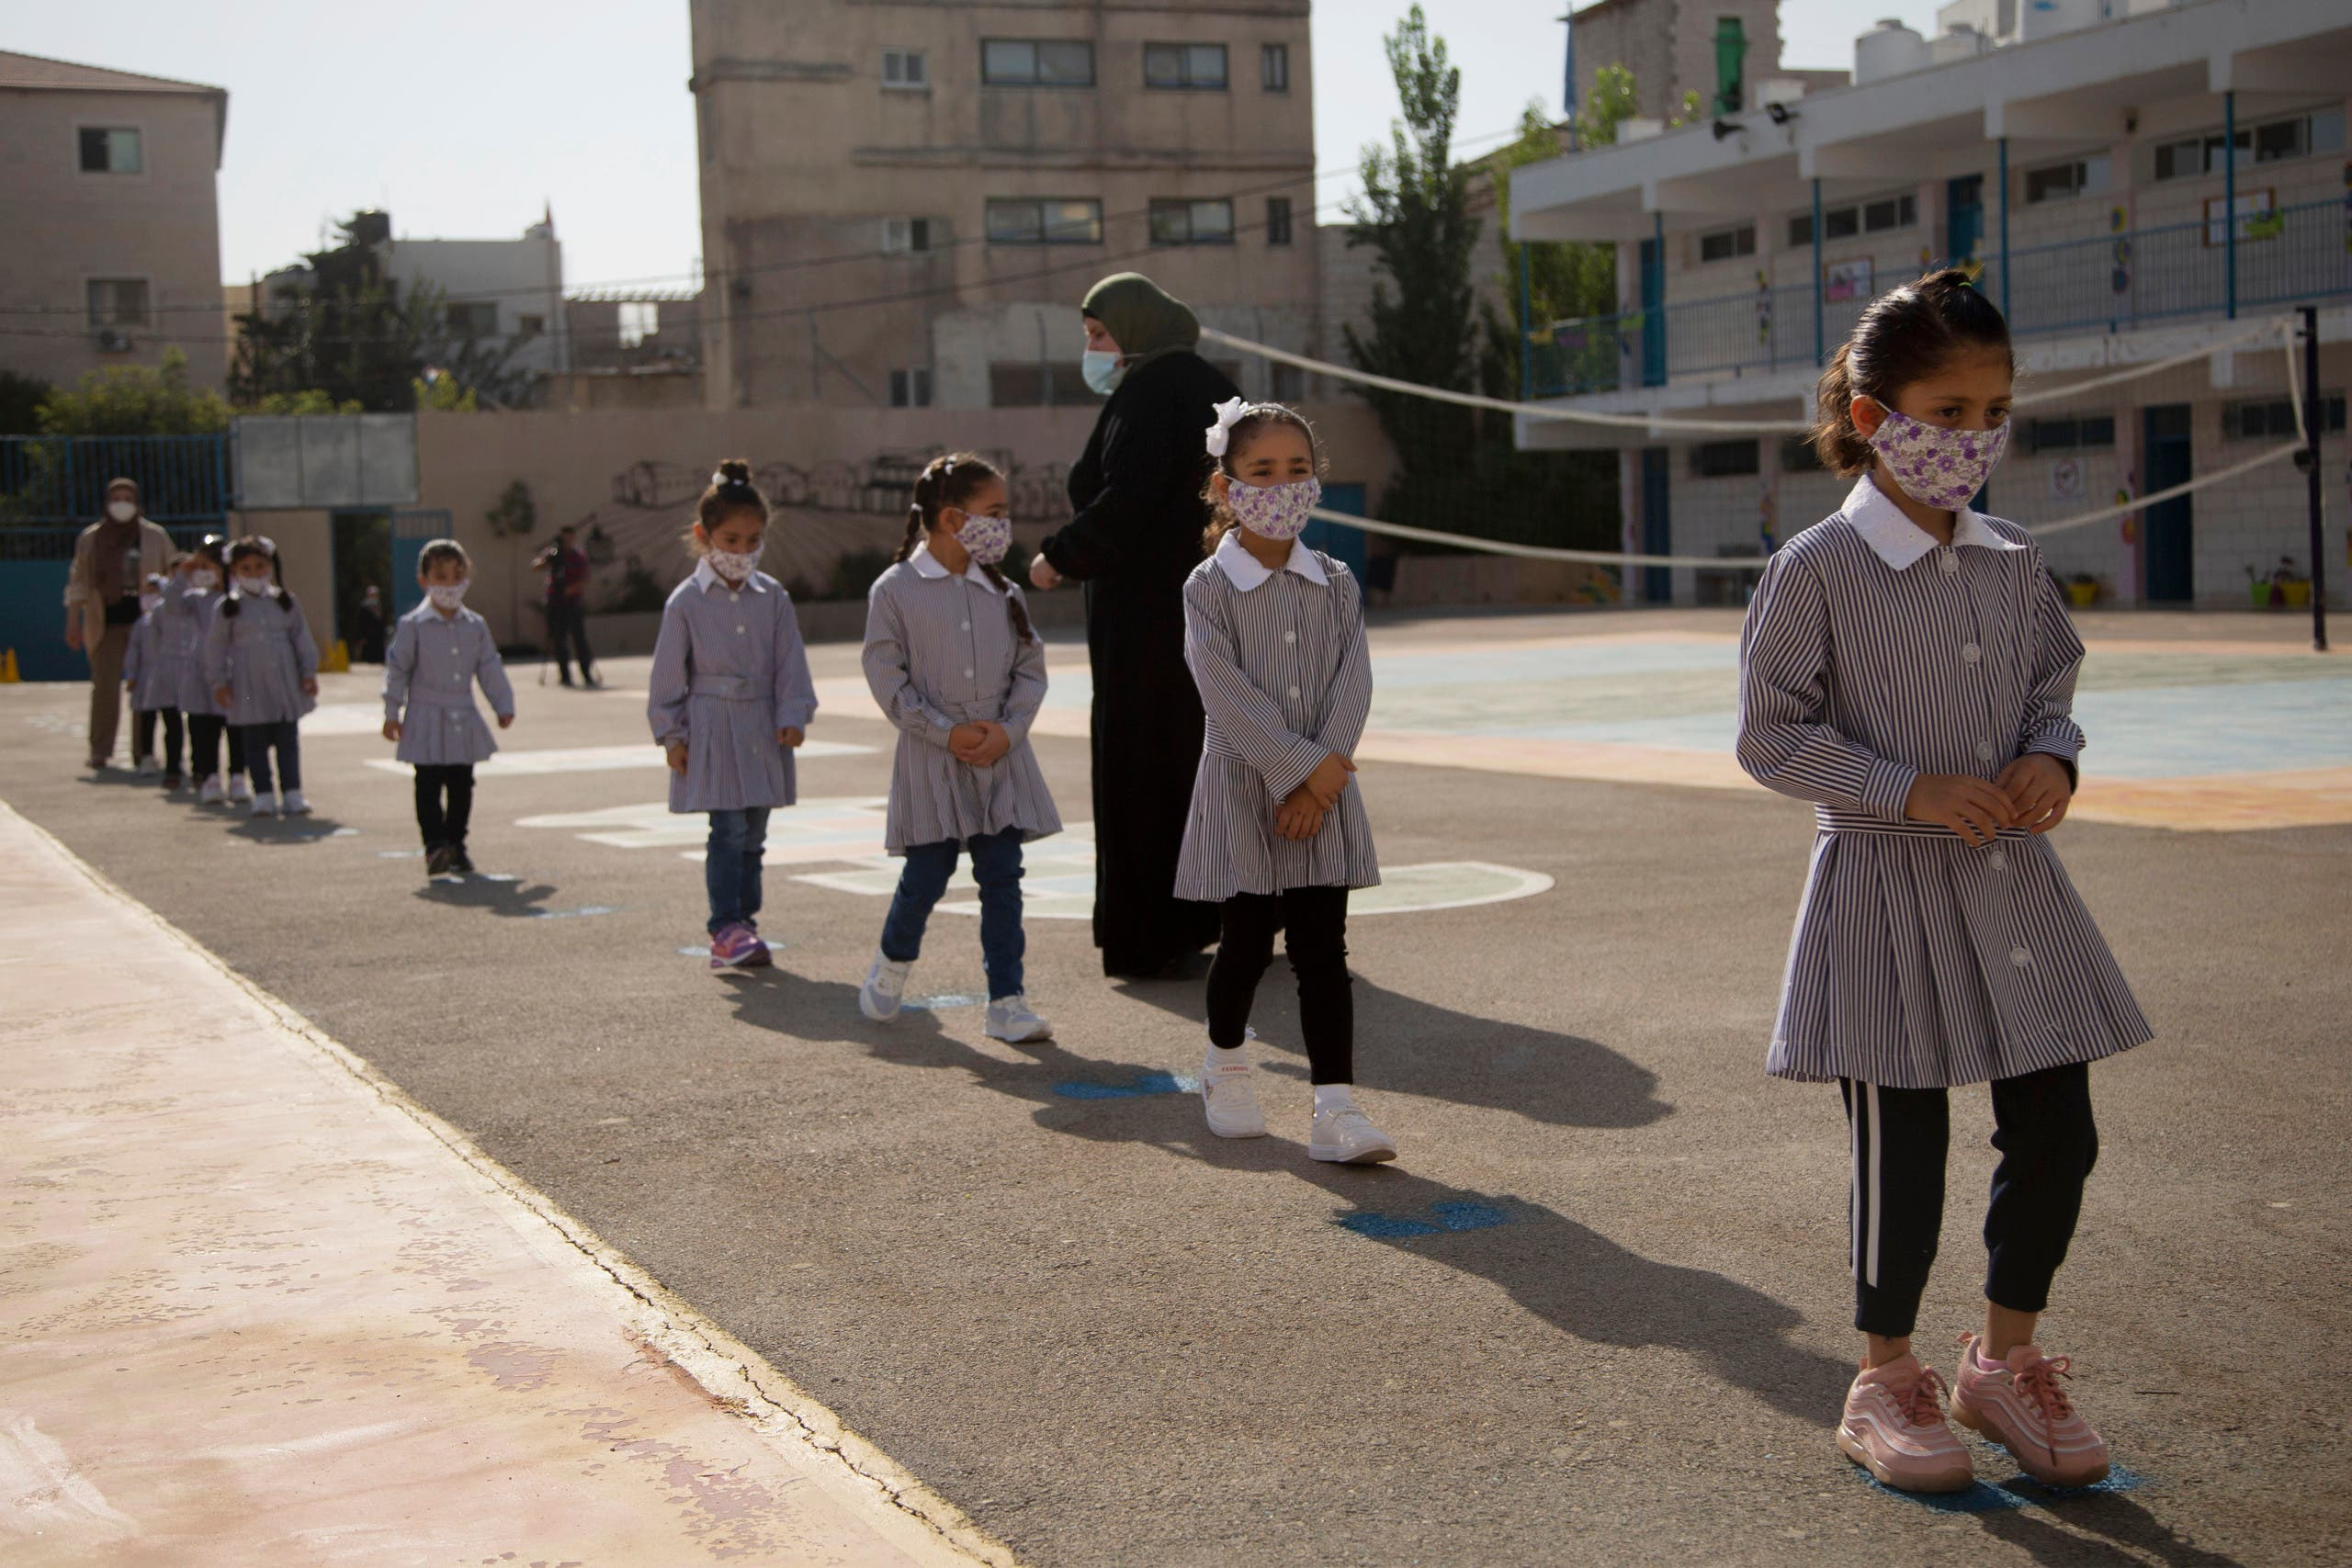 Palestinian elementary school students wearing protective face masks, amid the coronavirus pandemic, enter school on the first day of class at United Nations-run school in the West Bank city of Ramallah, Sunday, September 6, 2020. (The Associated Press/Majdi Mohammed)